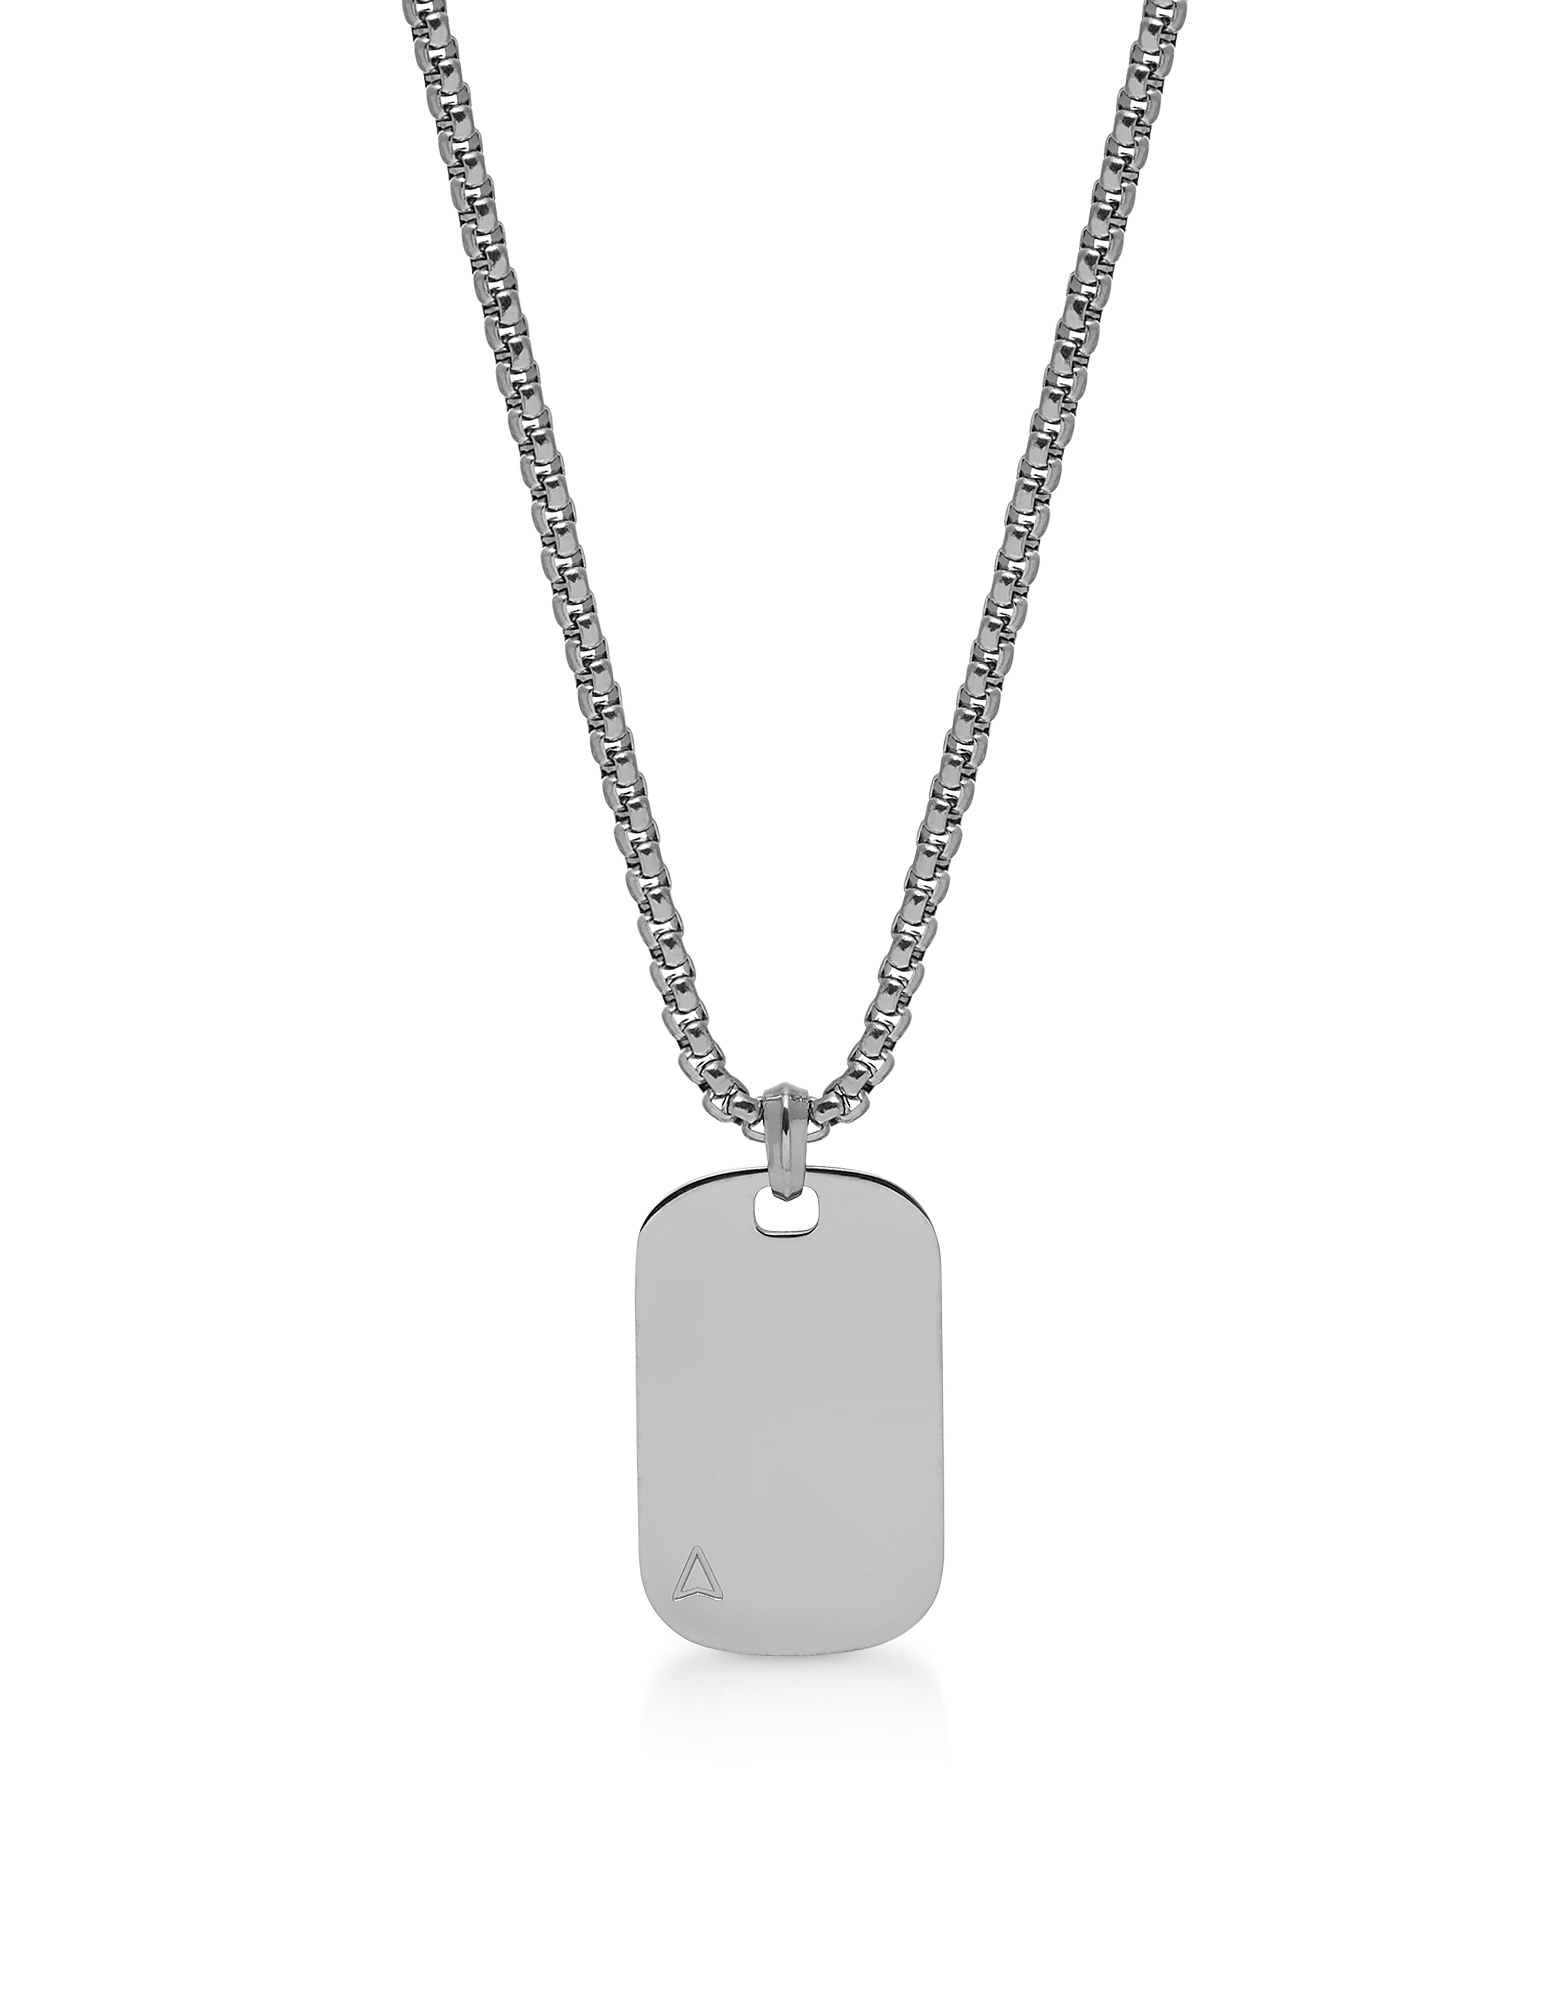 Northskull Designer Men's Necklaces, Id Tag Necklace Gunmetal